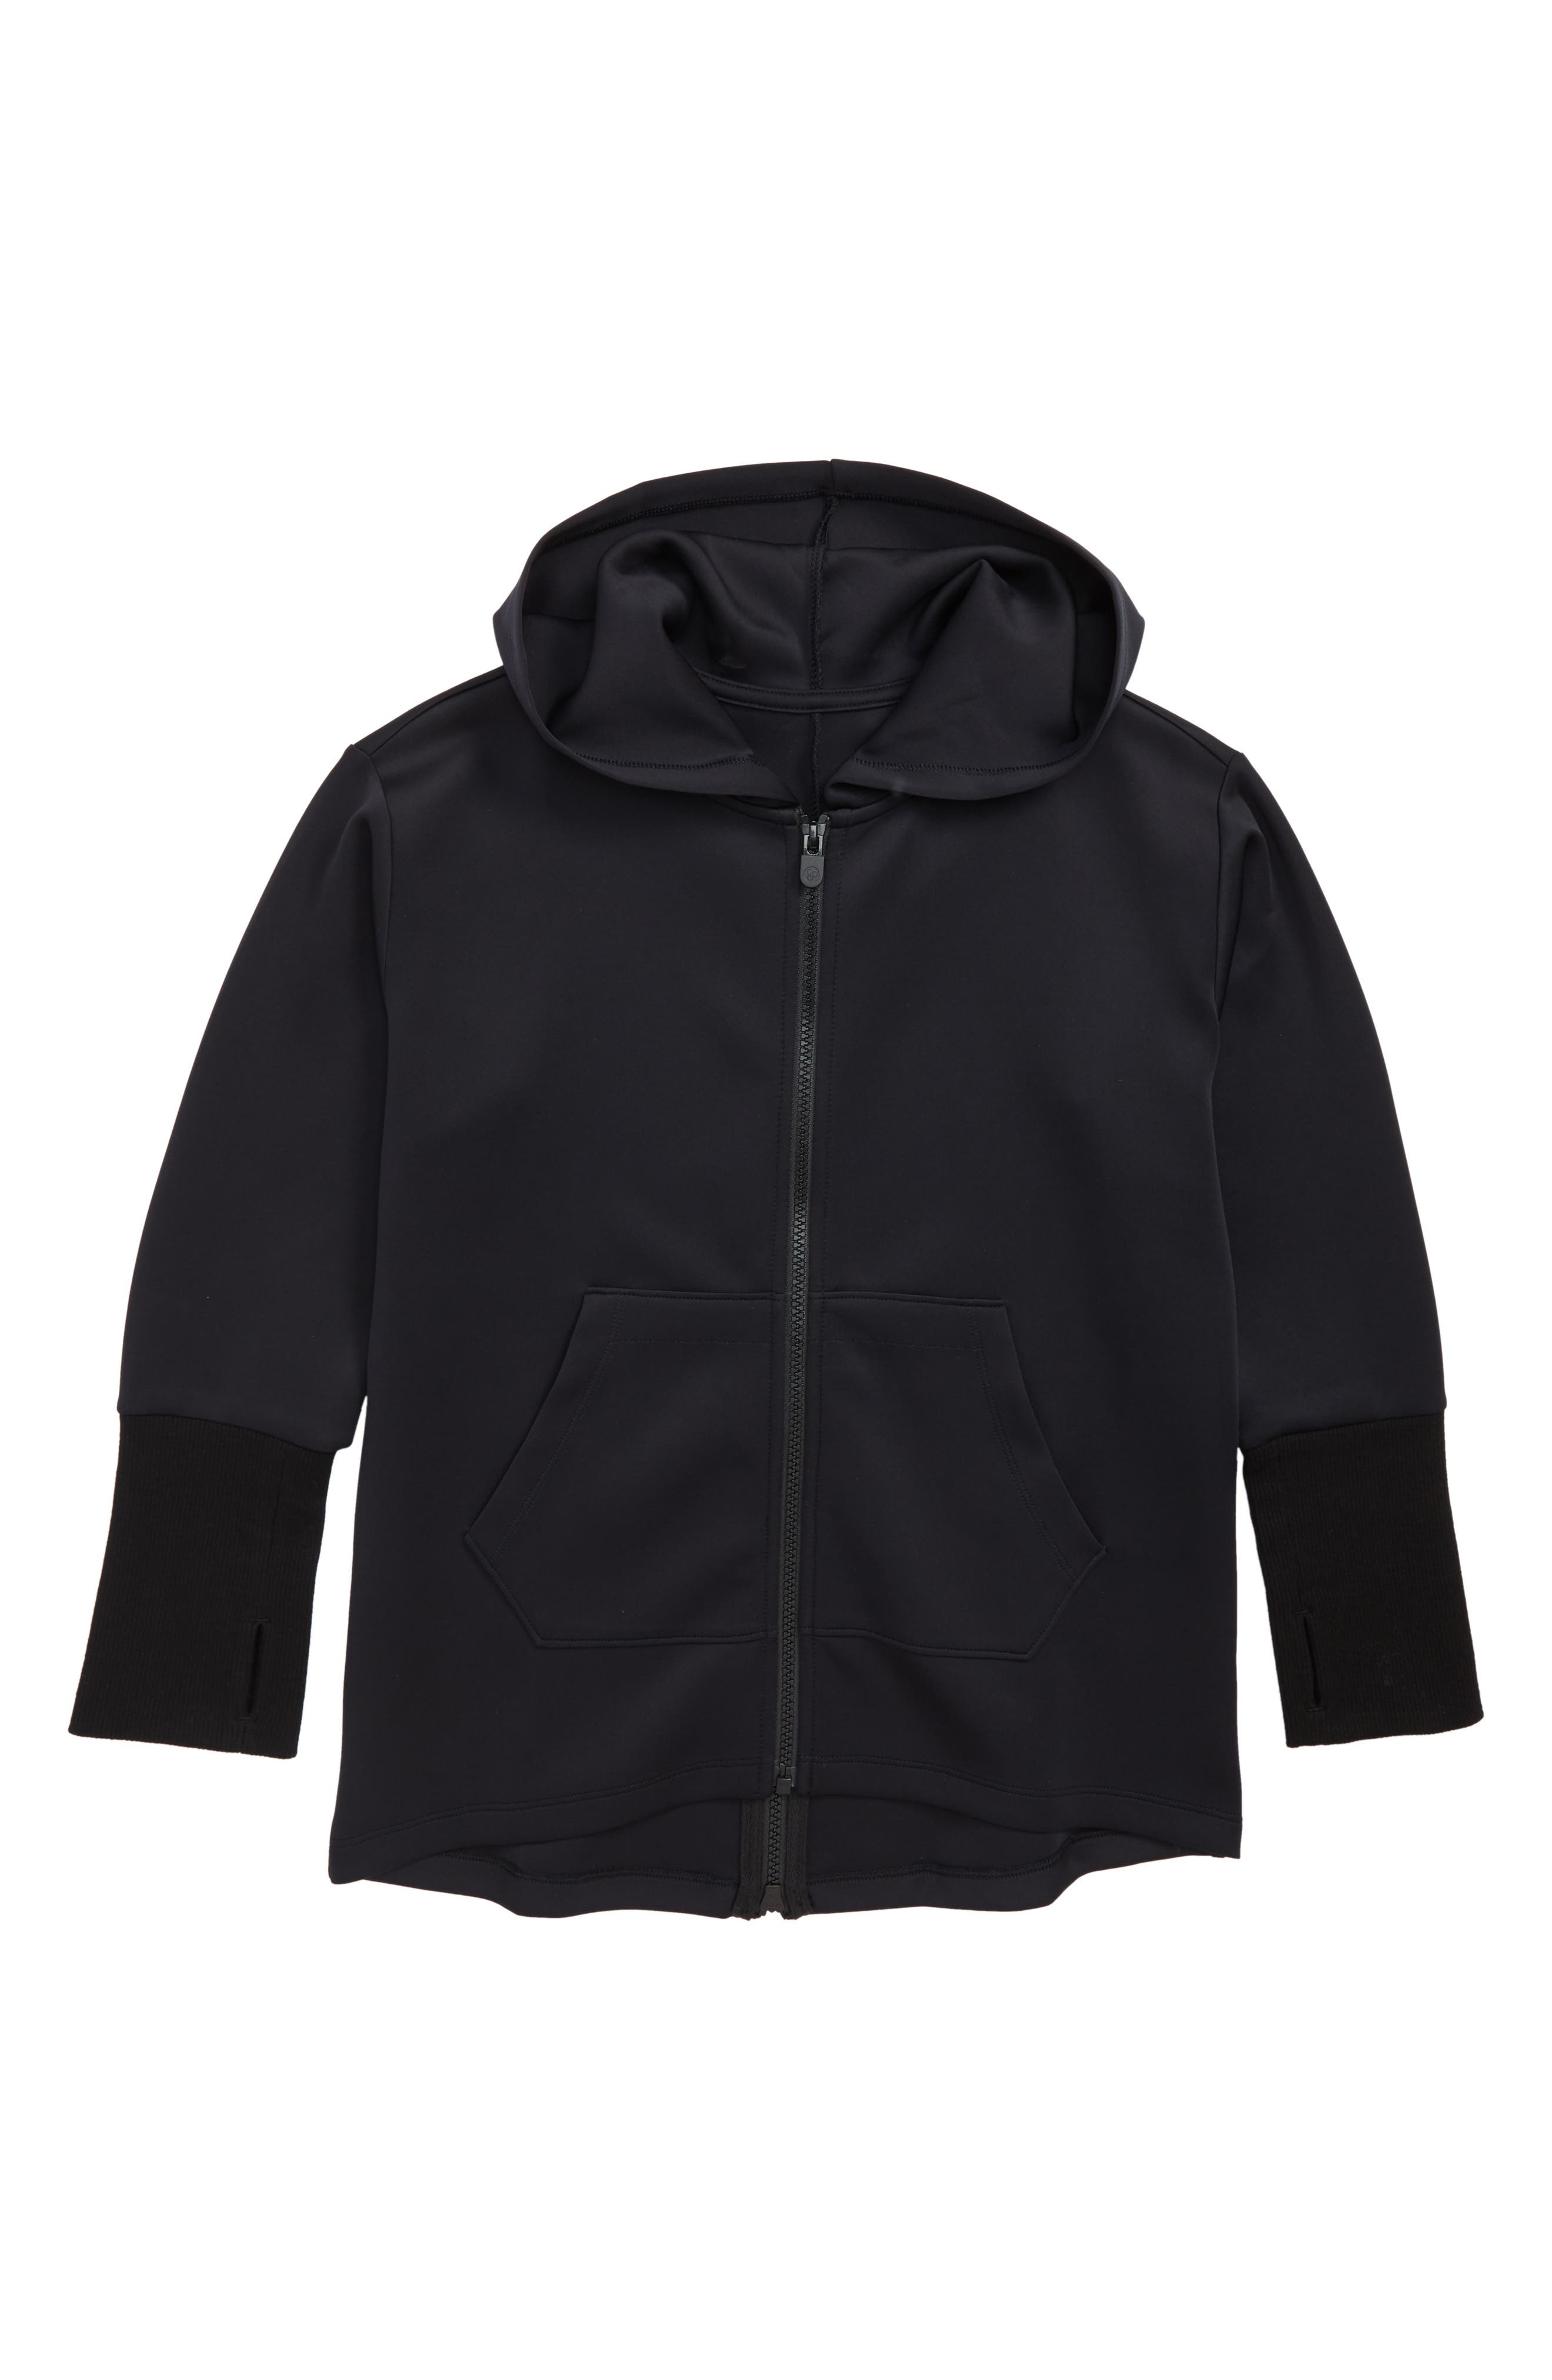 Hooded Zip Jacket,                         Main,                         color, Black